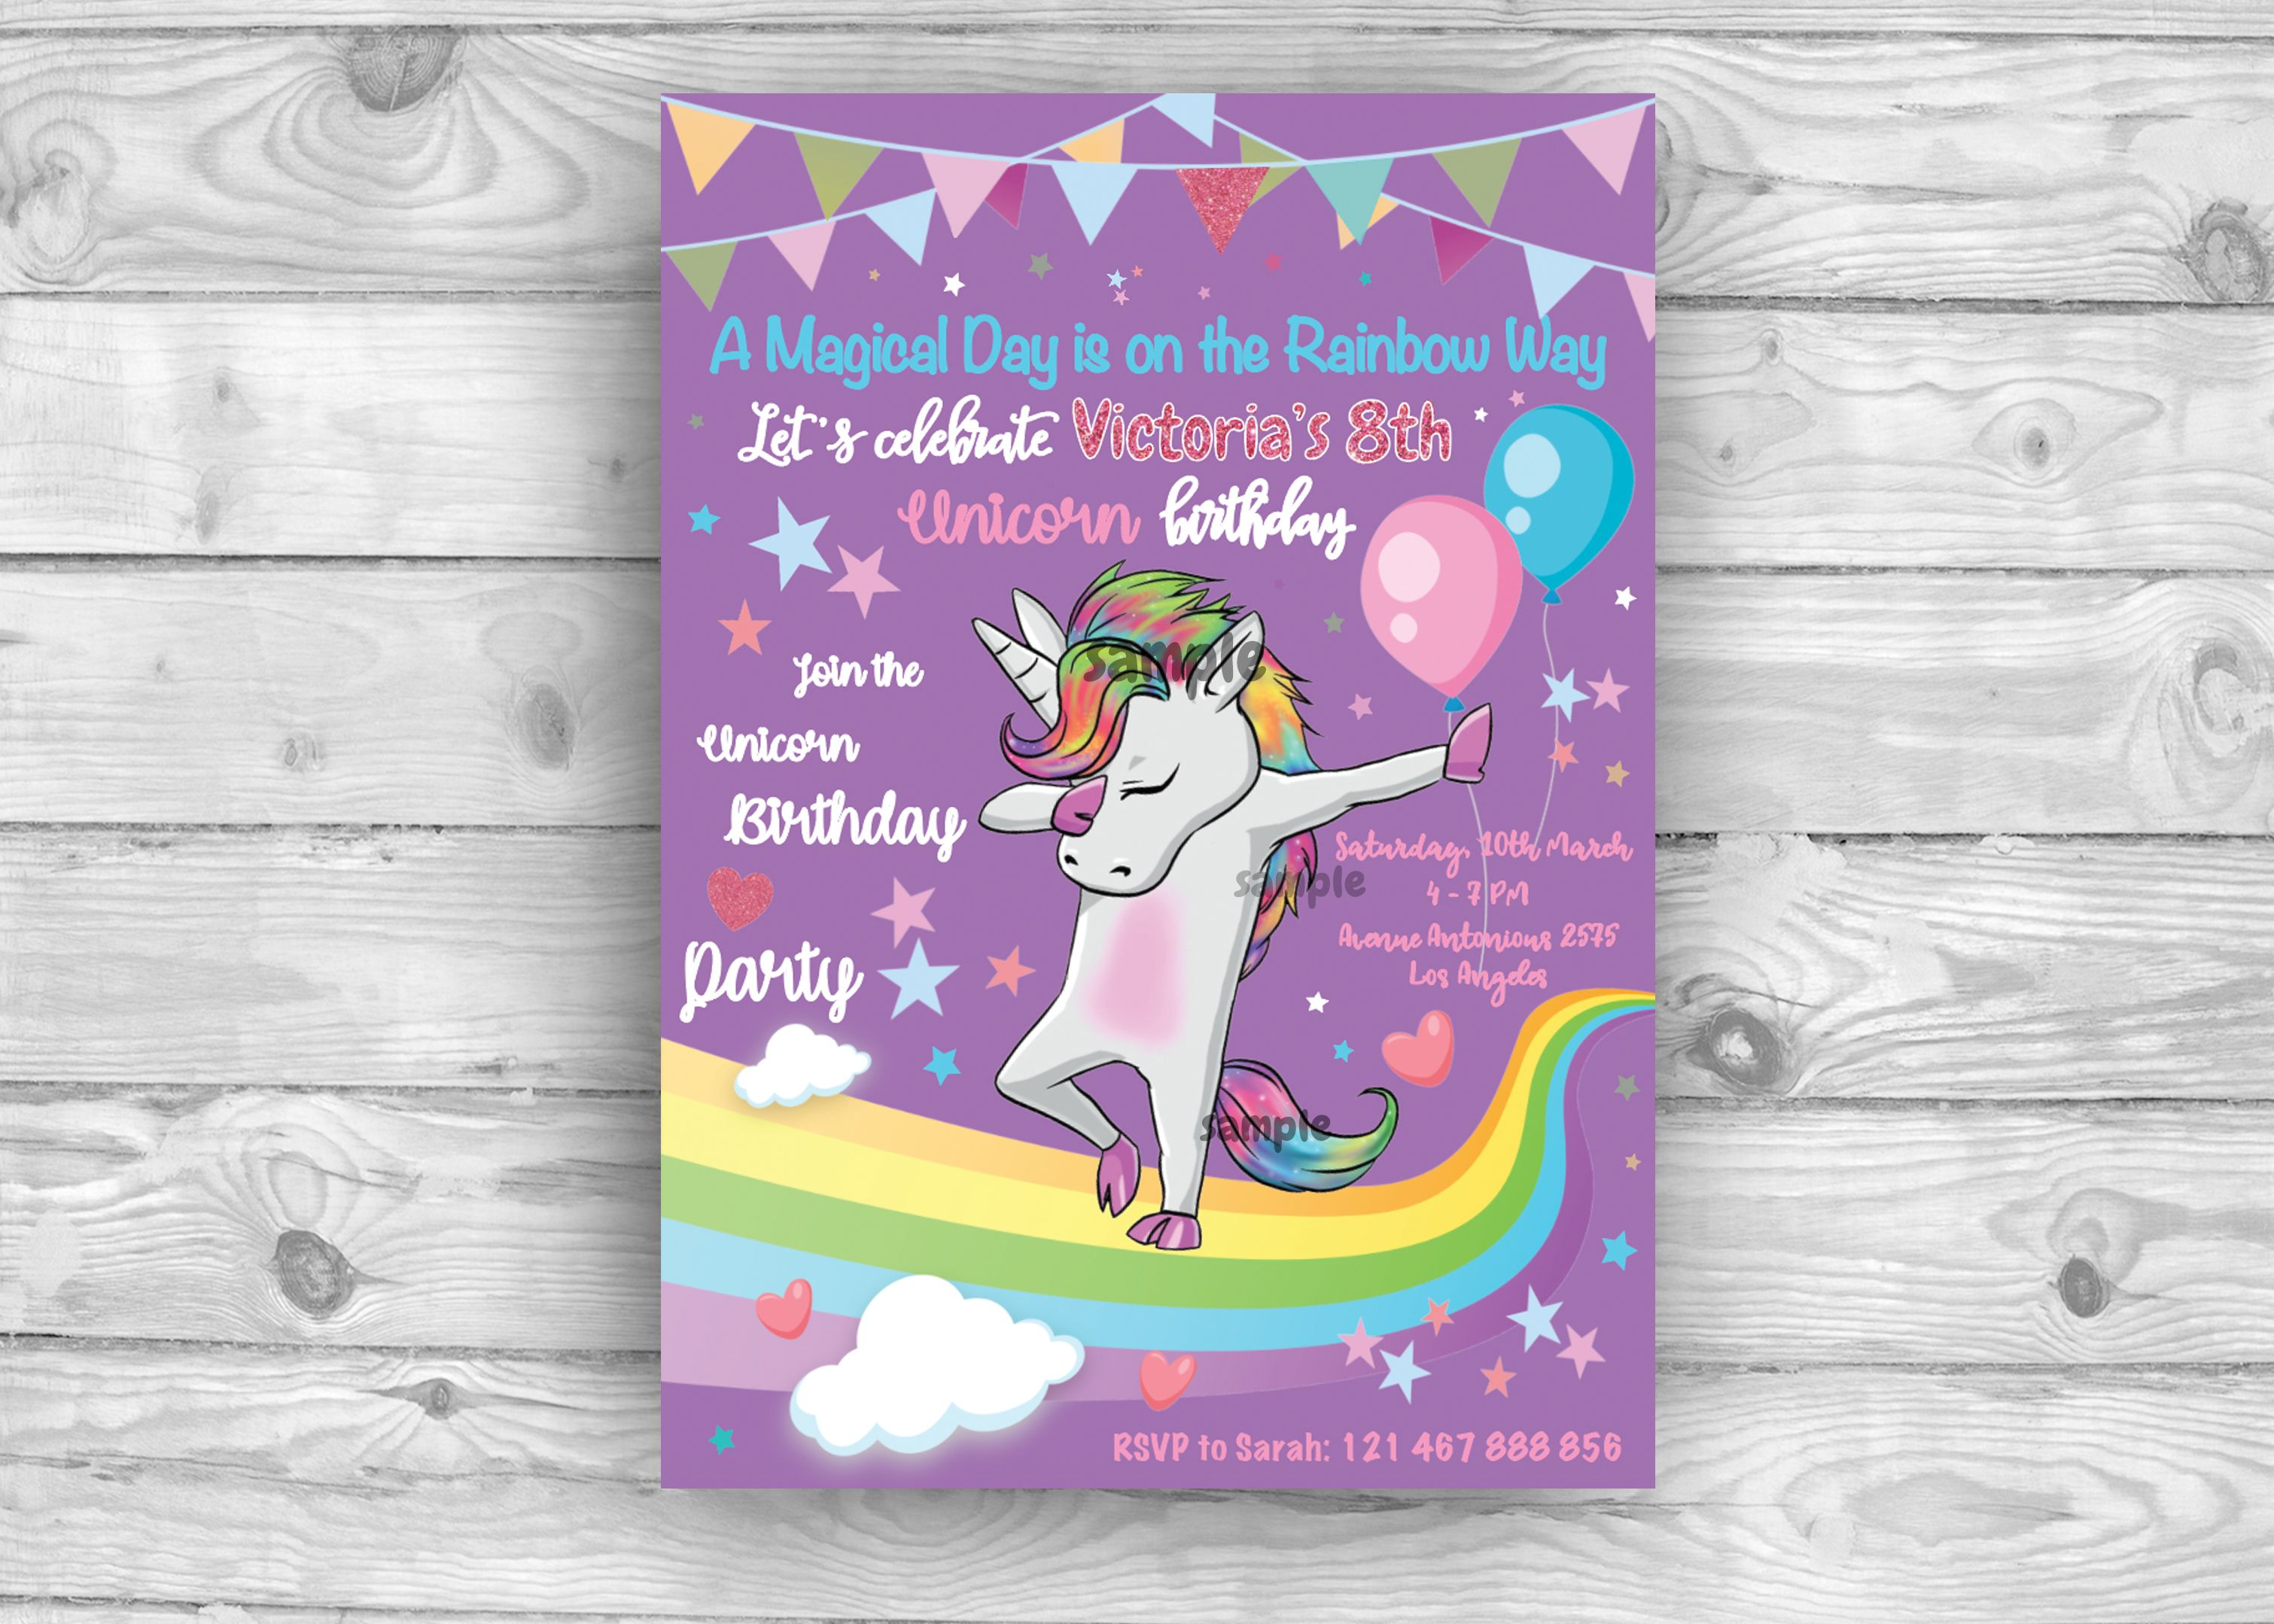 Unicorn Invitation Cute Unicorn Invitation Rainbow Invitation